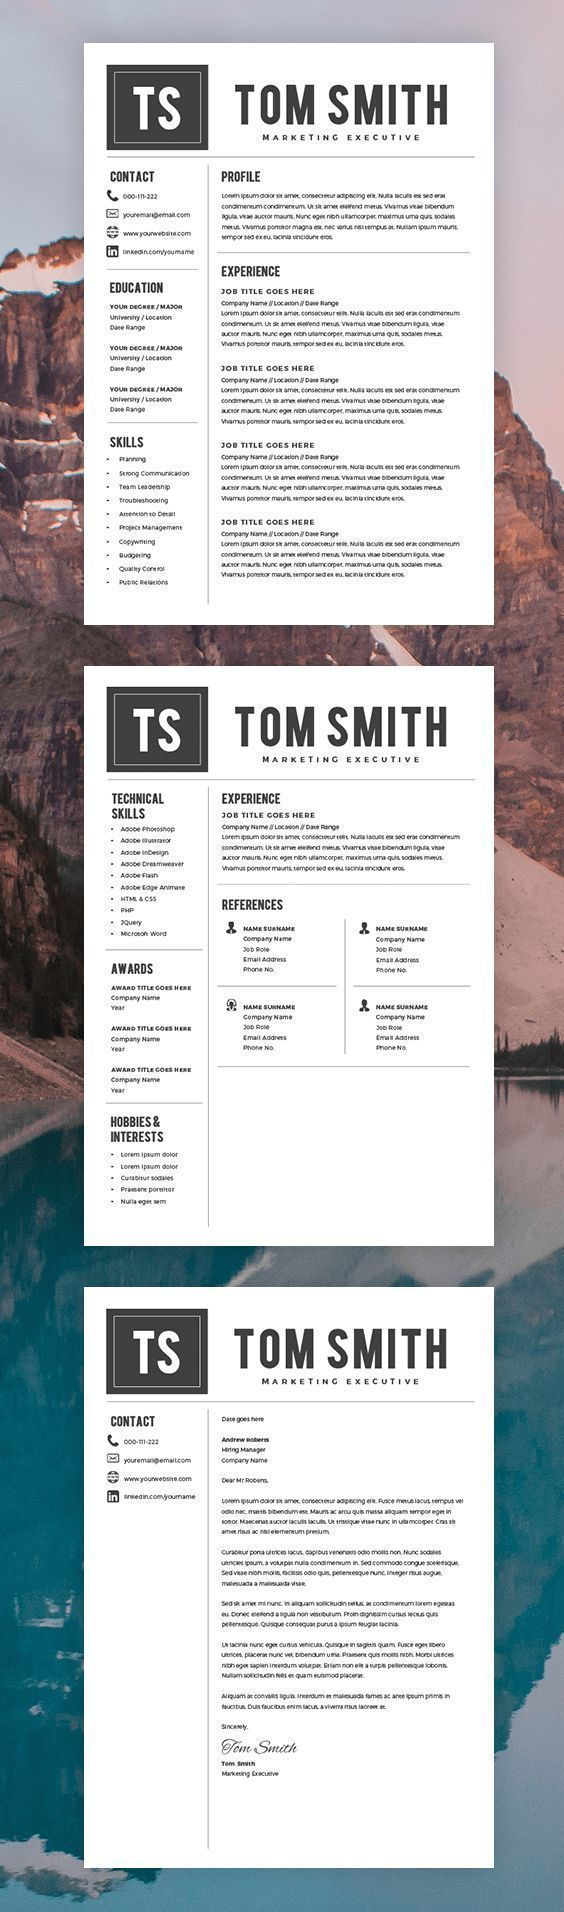 cover letter template for receptionist%0A Modern Resume Template  Free Cover Letter  CV Template  MS Word on Mac